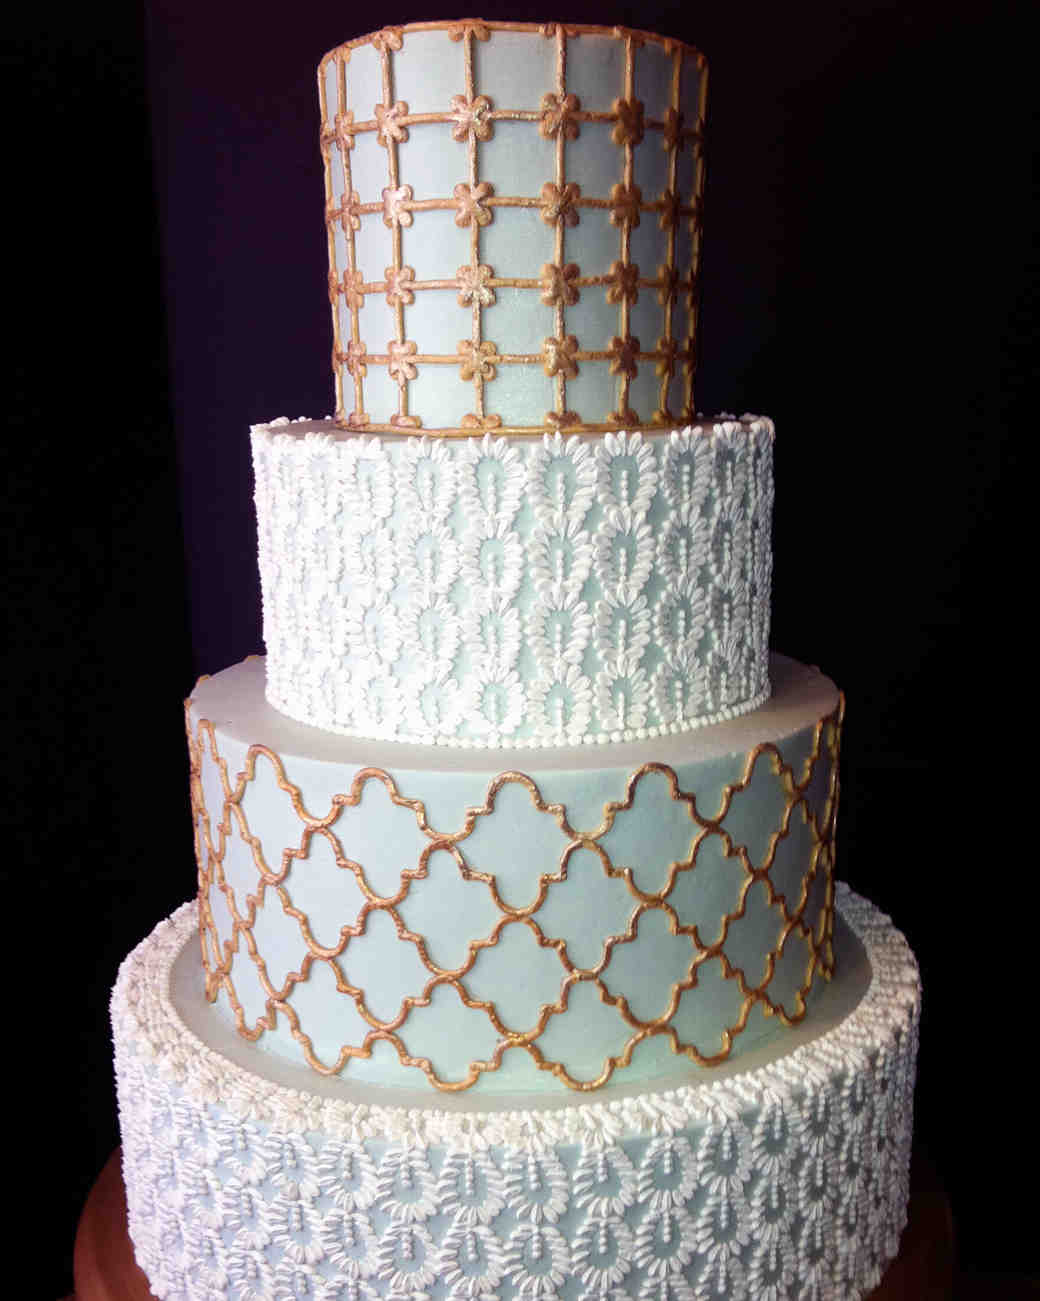 A Sweet Guide To Choosing A Frosting For Your Wedding Cake - Frosted Wedding Cakes